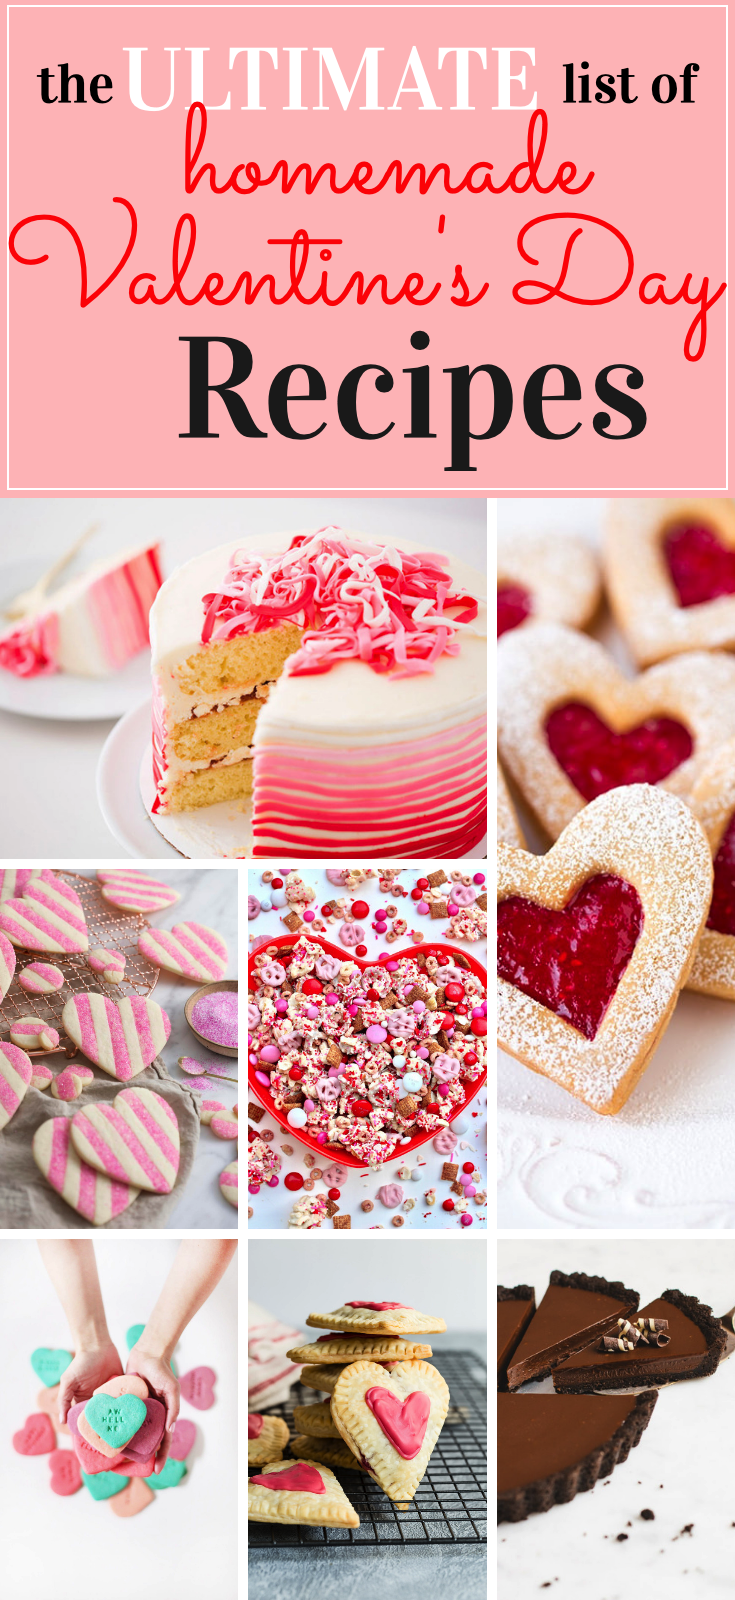 Homemade Valentine's Day treats are some of my absolute favorites to make, so if you're looking for a little recipe inspiration to celebrate love, we have the ultimate list with more than 50+ incredible recipes to try this February. | glitterinc.com | @glitterinc